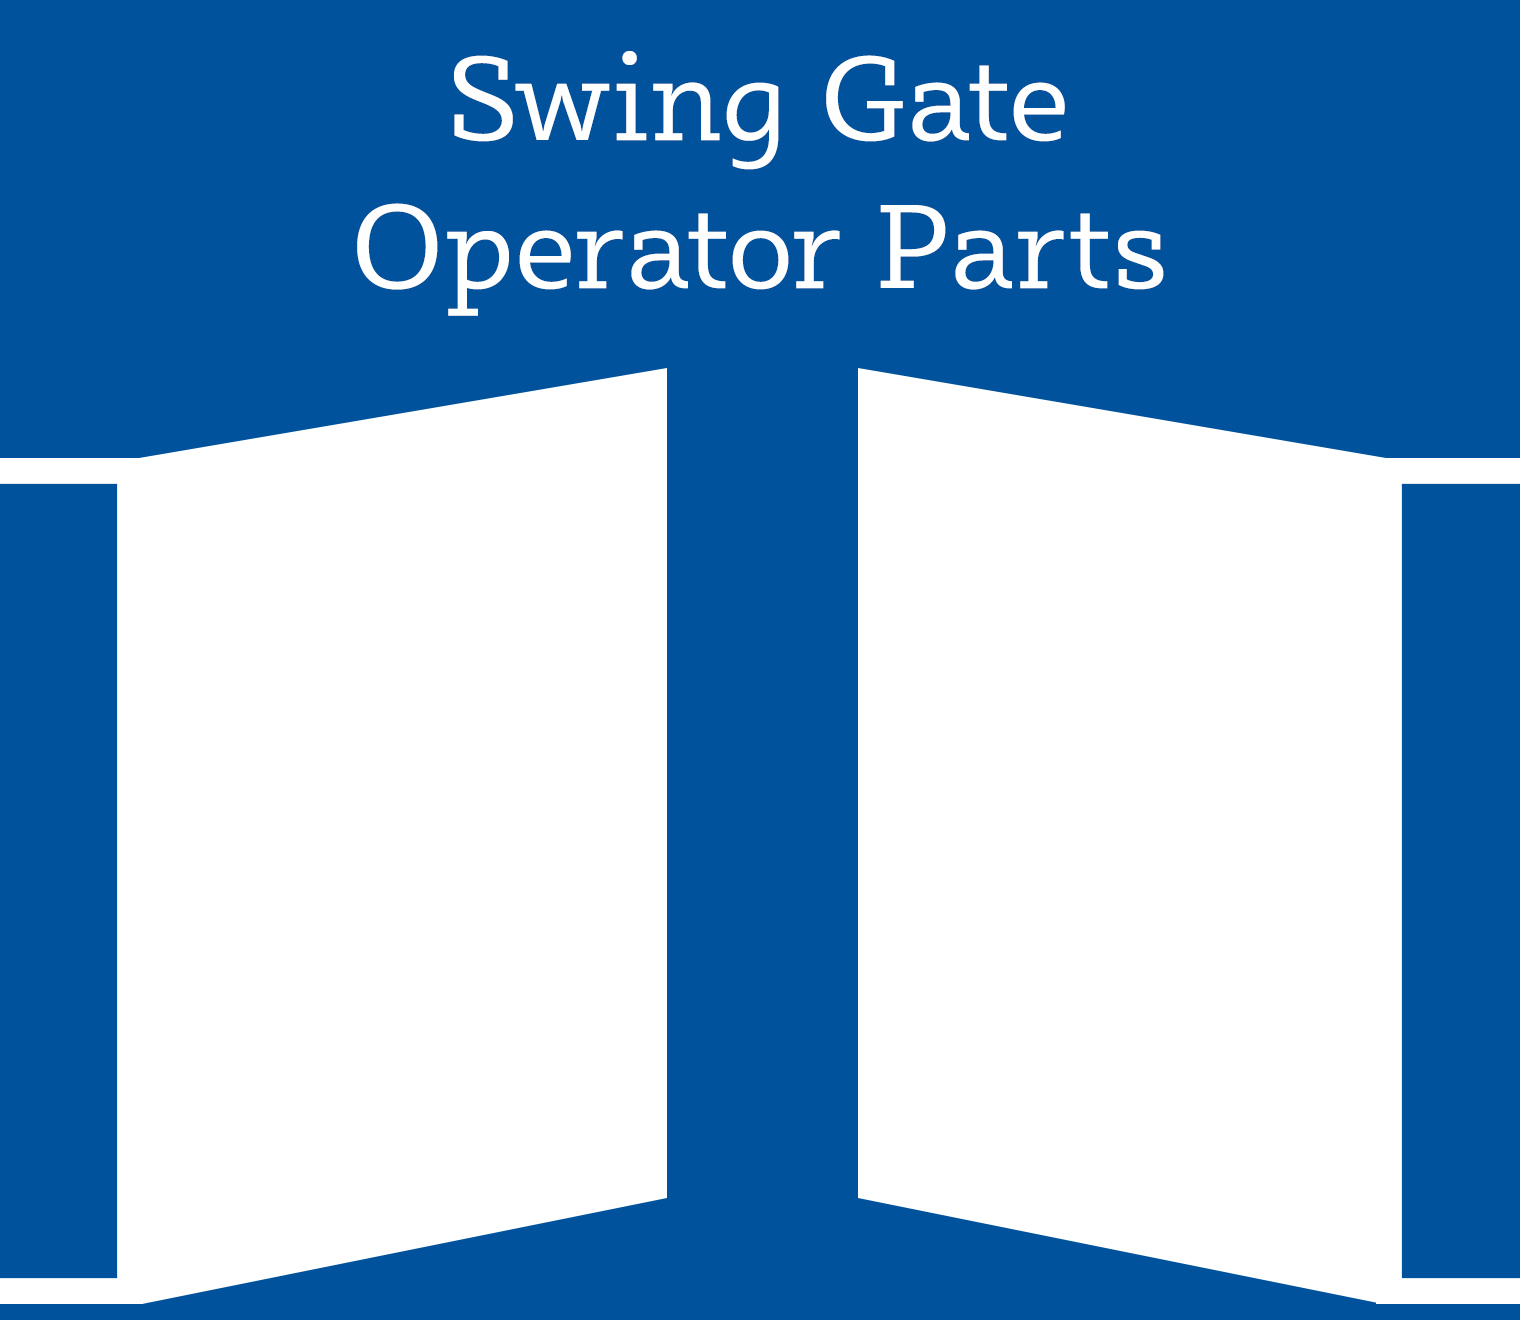 Shop Swing Gate Operator Parts